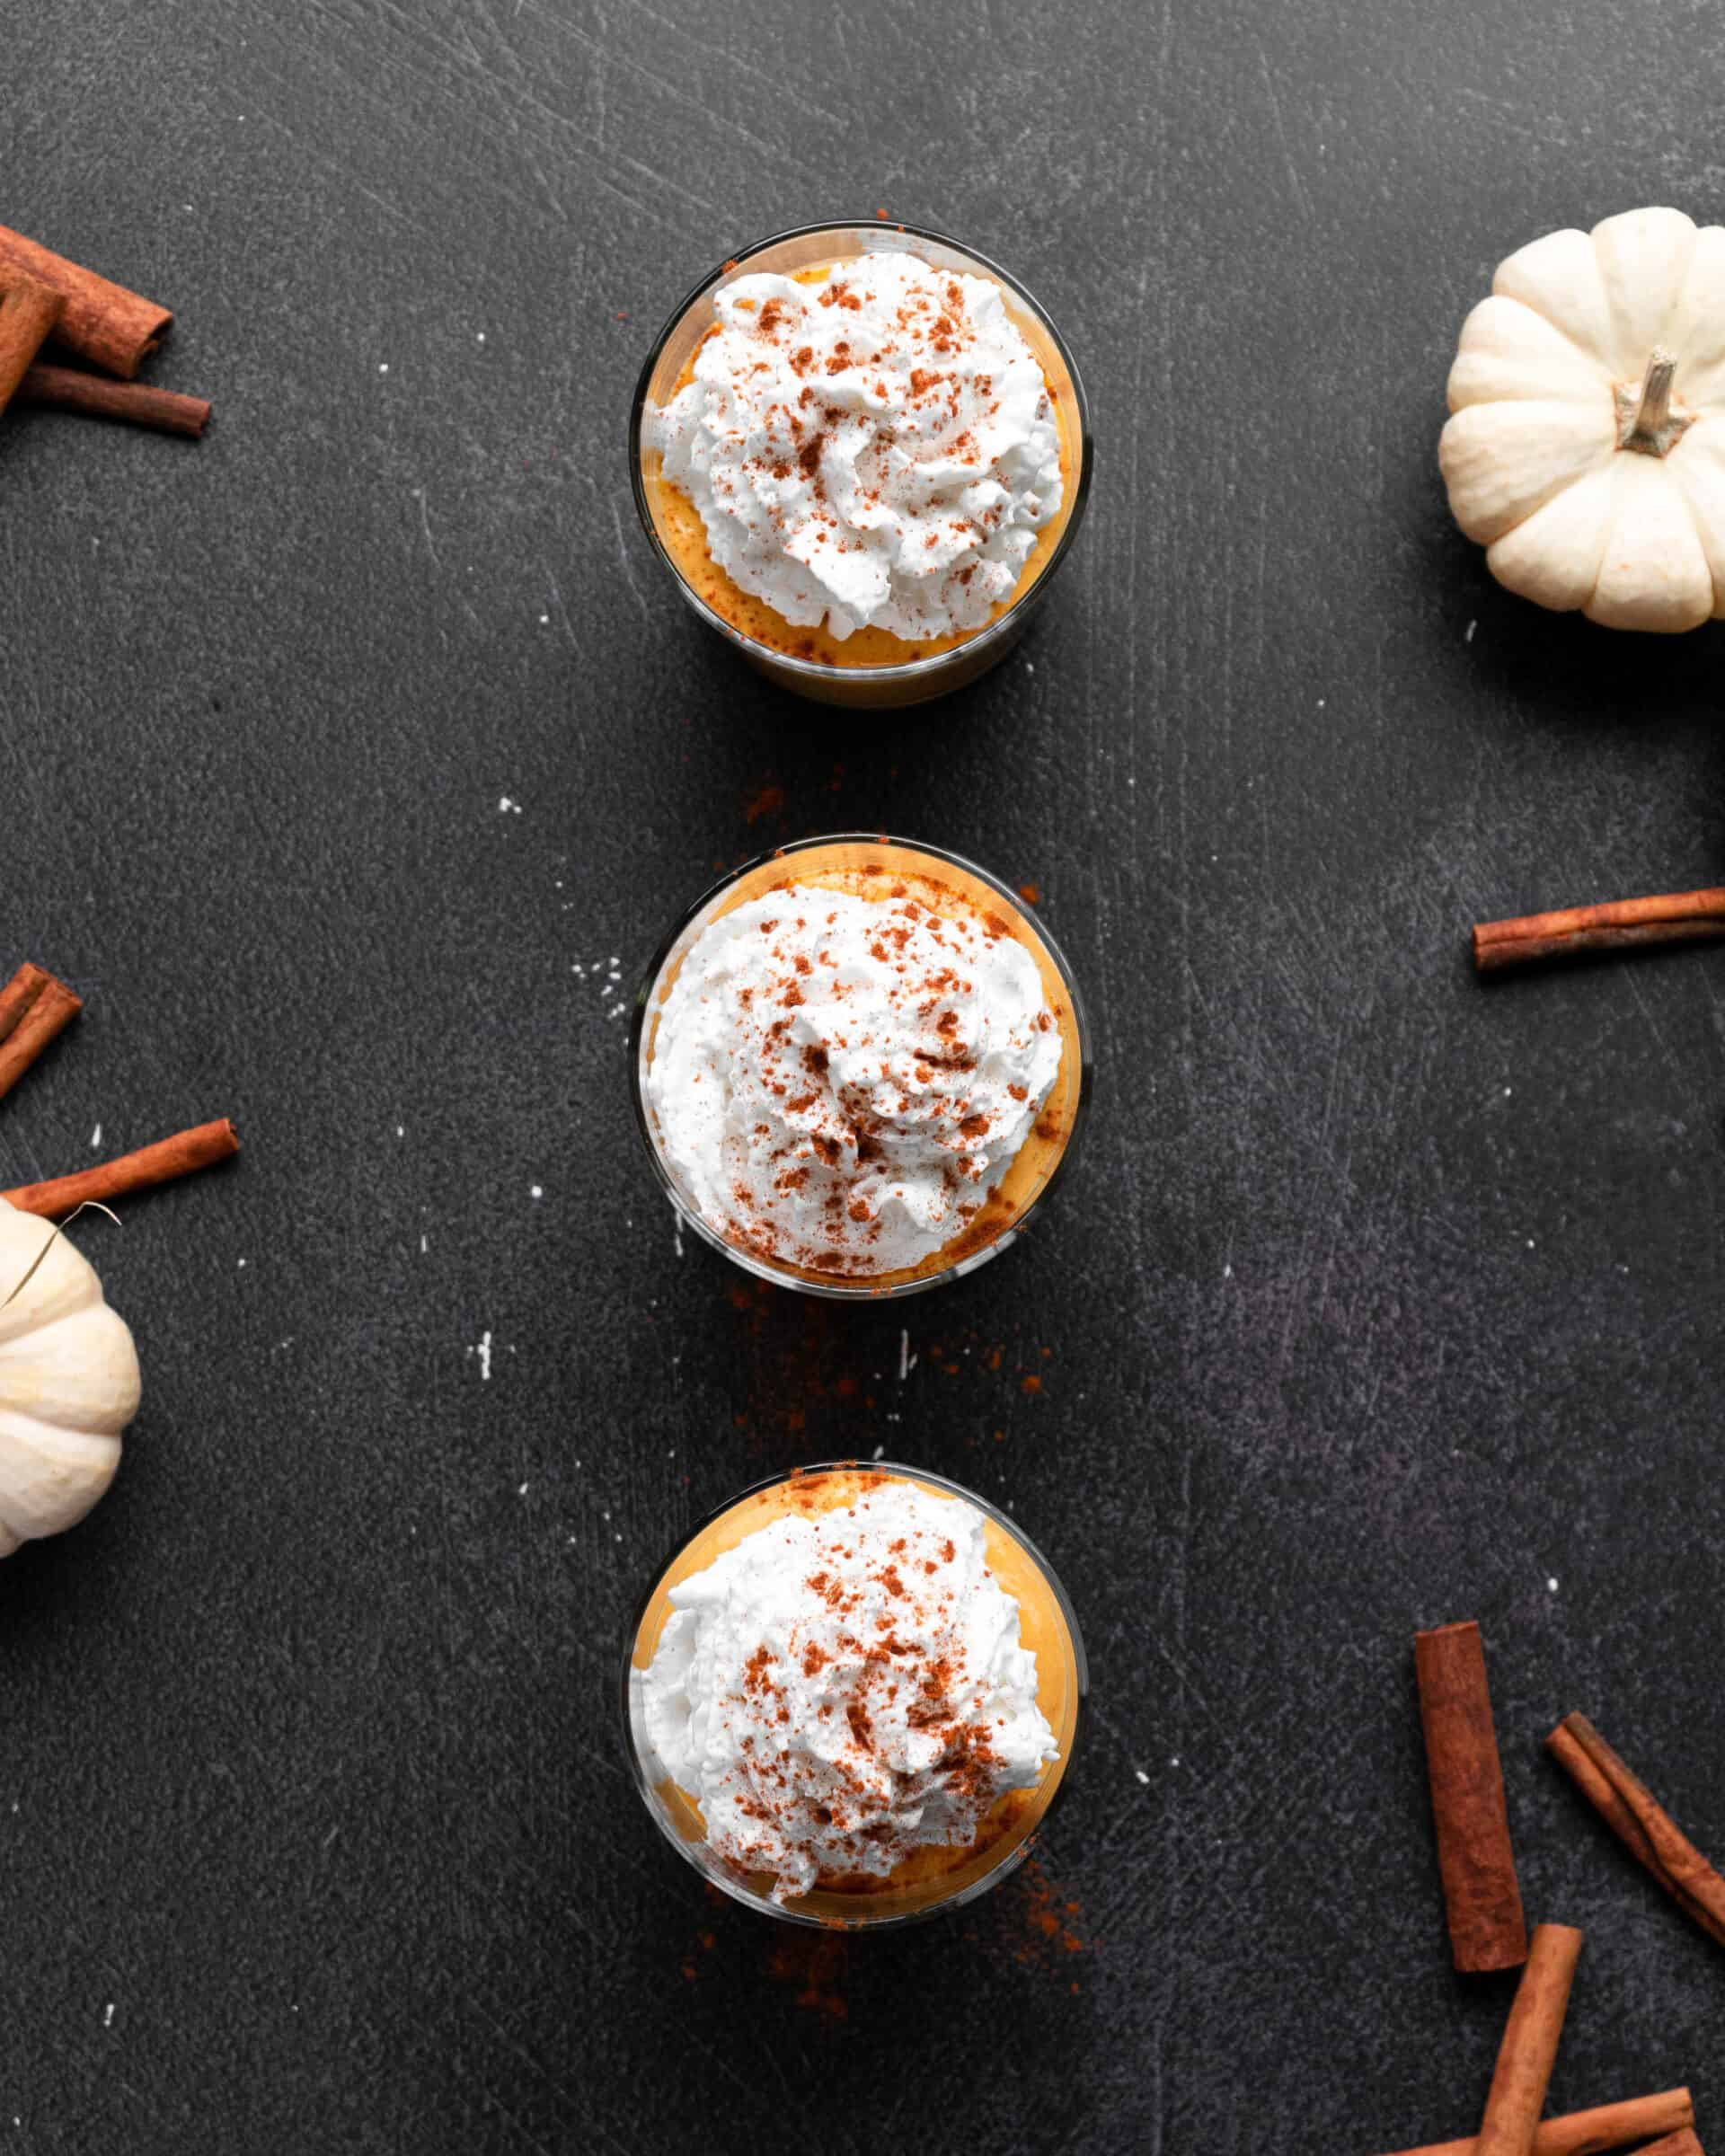 Pumpkin smoothies with whipped cream